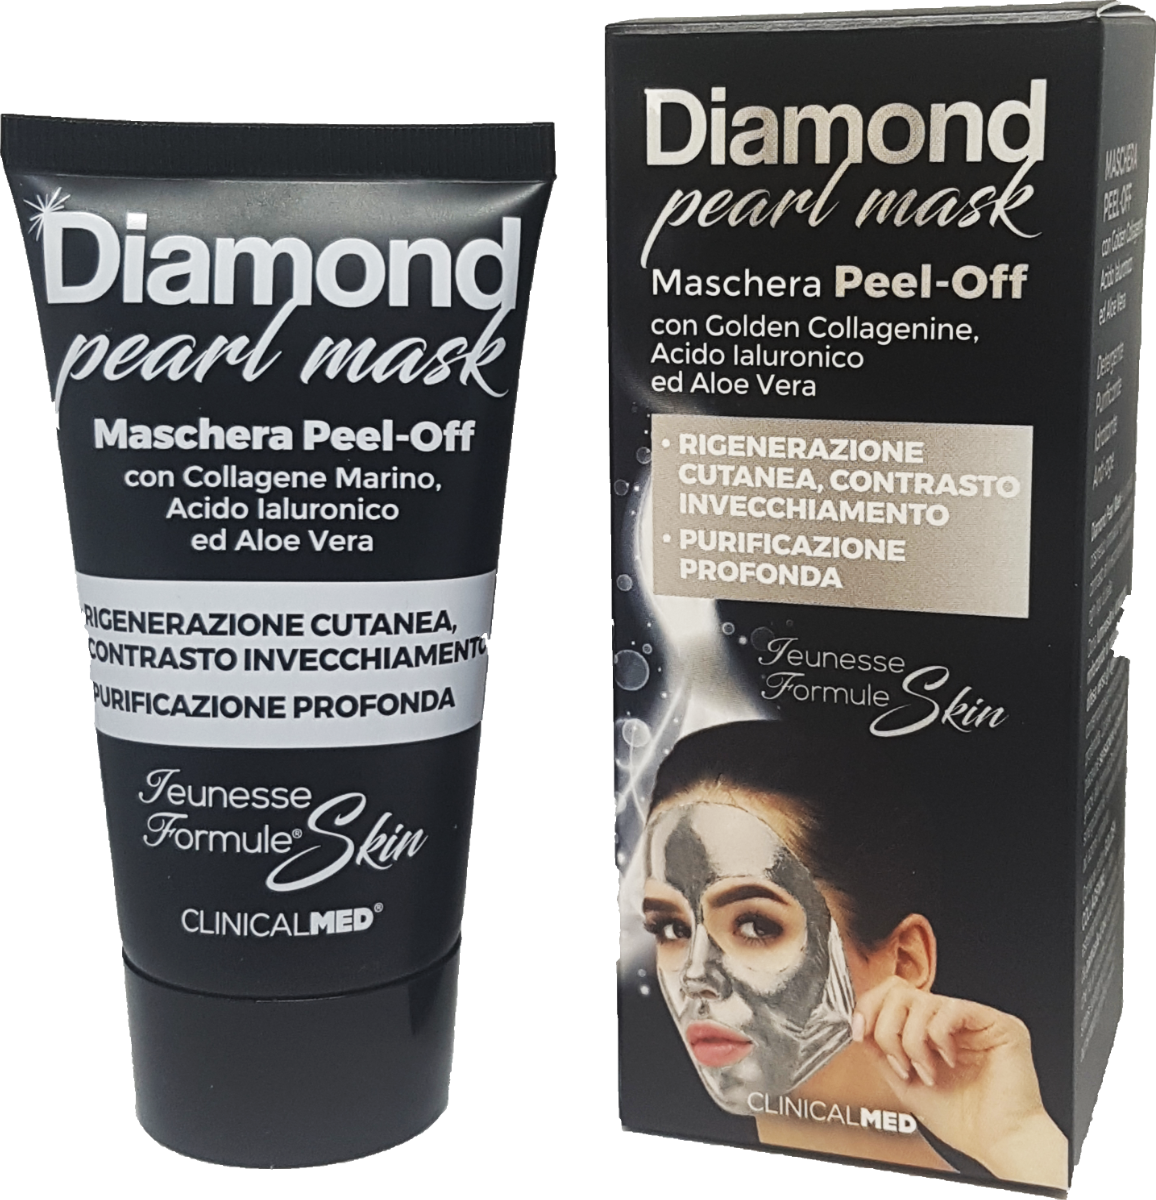 ClinicalMED maschera anti-age Diamond pearl-mask